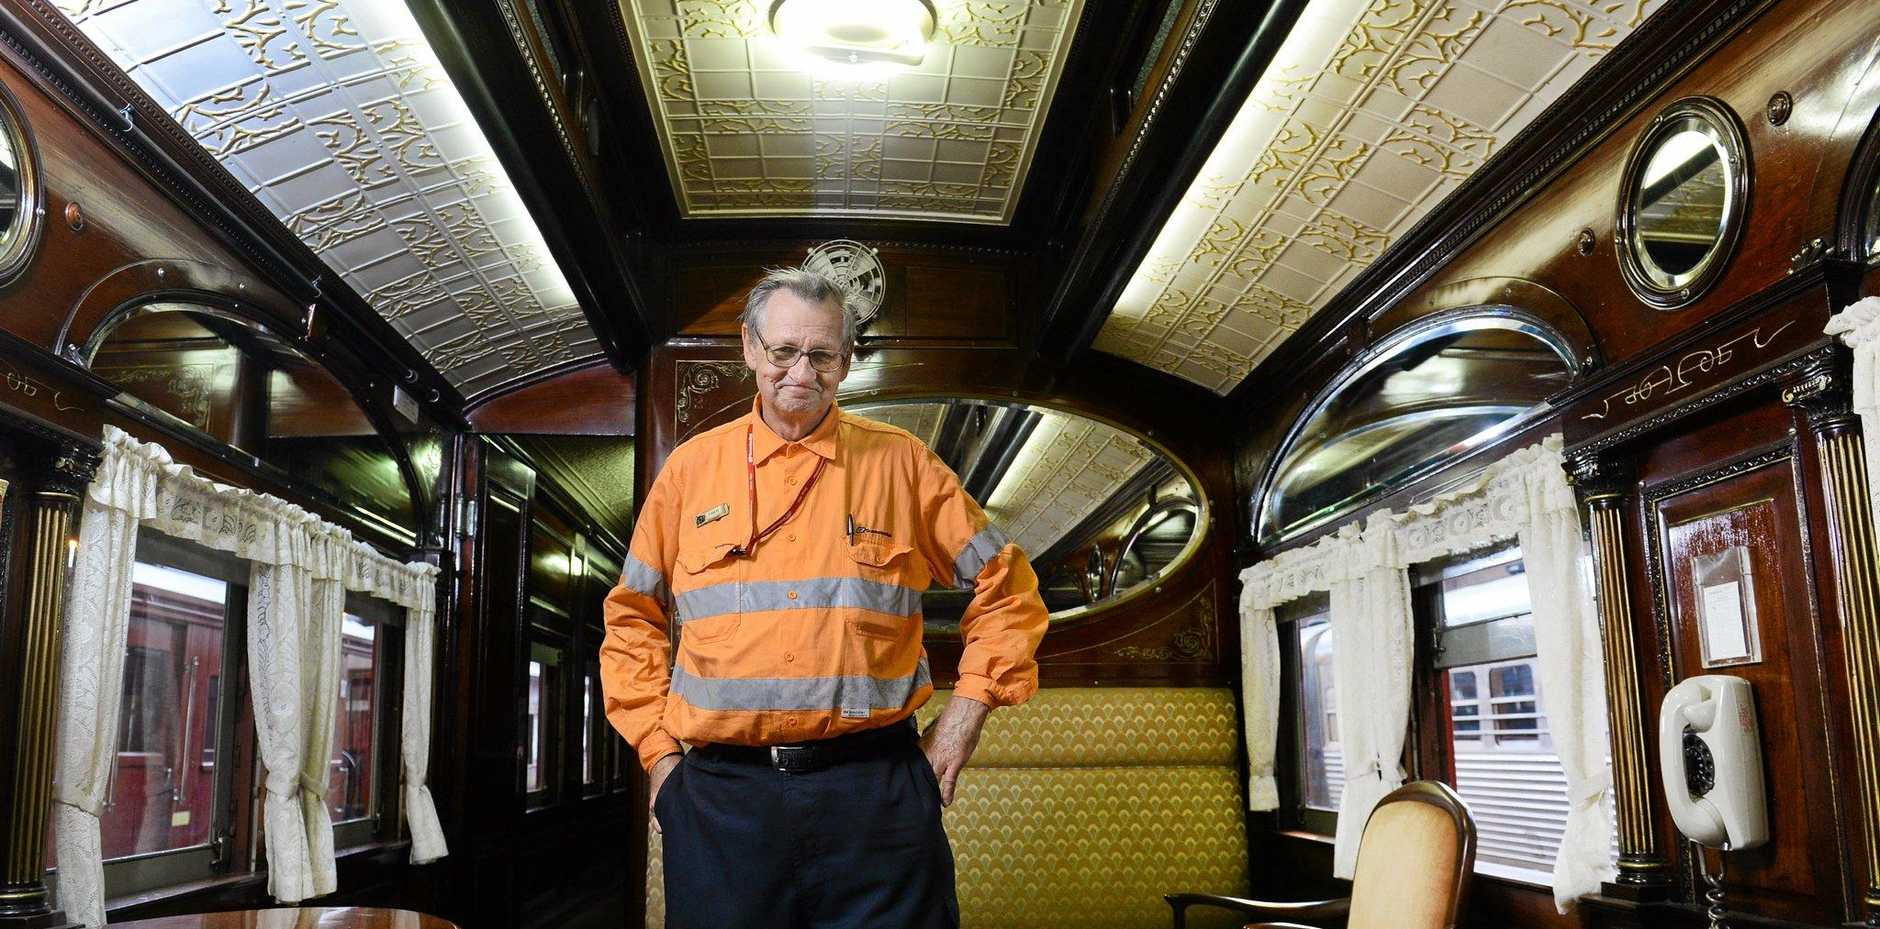 LUXURY: Queensland Rail volunteer Fred Holder inspects work on the 1903 Vice-Regal carriage being prepared by QR staff for the Governor of Queensland.